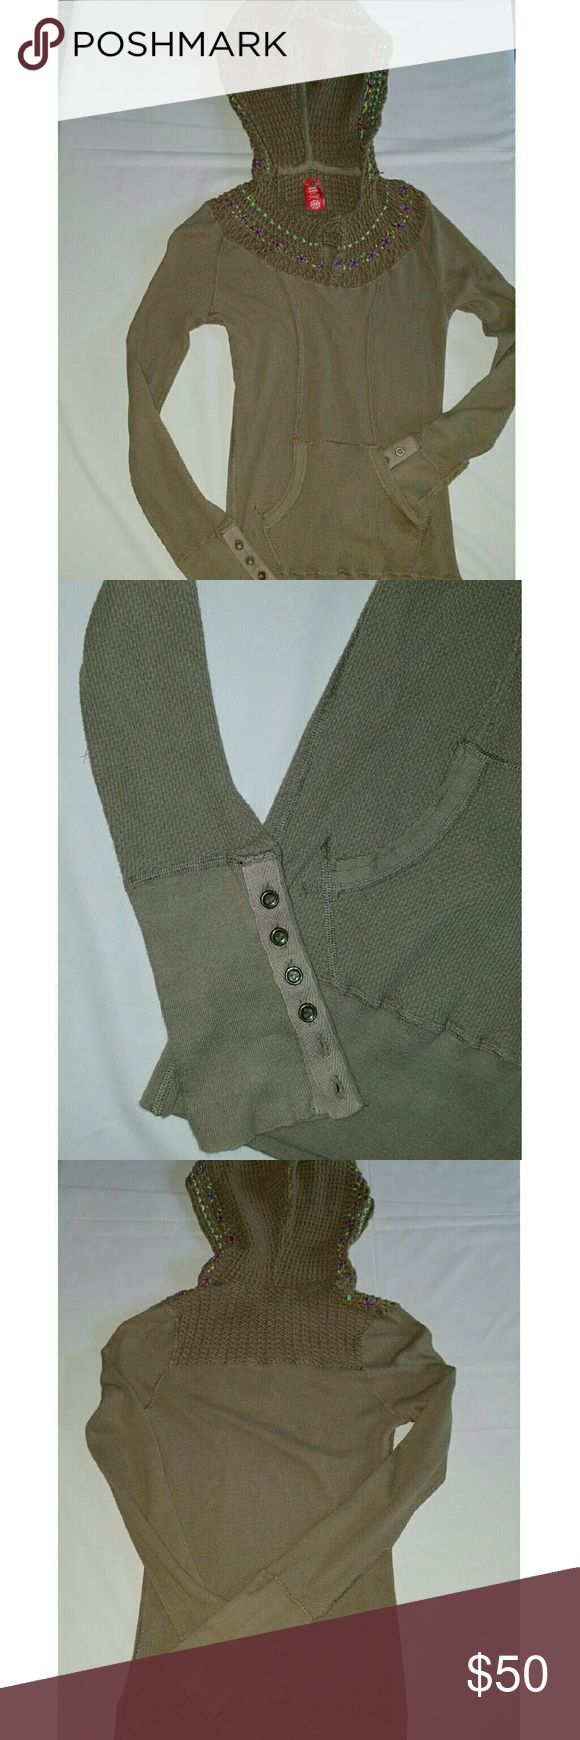 !!NEW!! FREE PEOPLE OLIVE THERMAL HOODIE EUC EUC FREE PEOPLE OLIVE THERMAL HOODIE Just the cutest and softest thermal around. This great top has delicate multi color embroidered yarns trimming the neckline and hood. No snags or pilling. Free People Tops